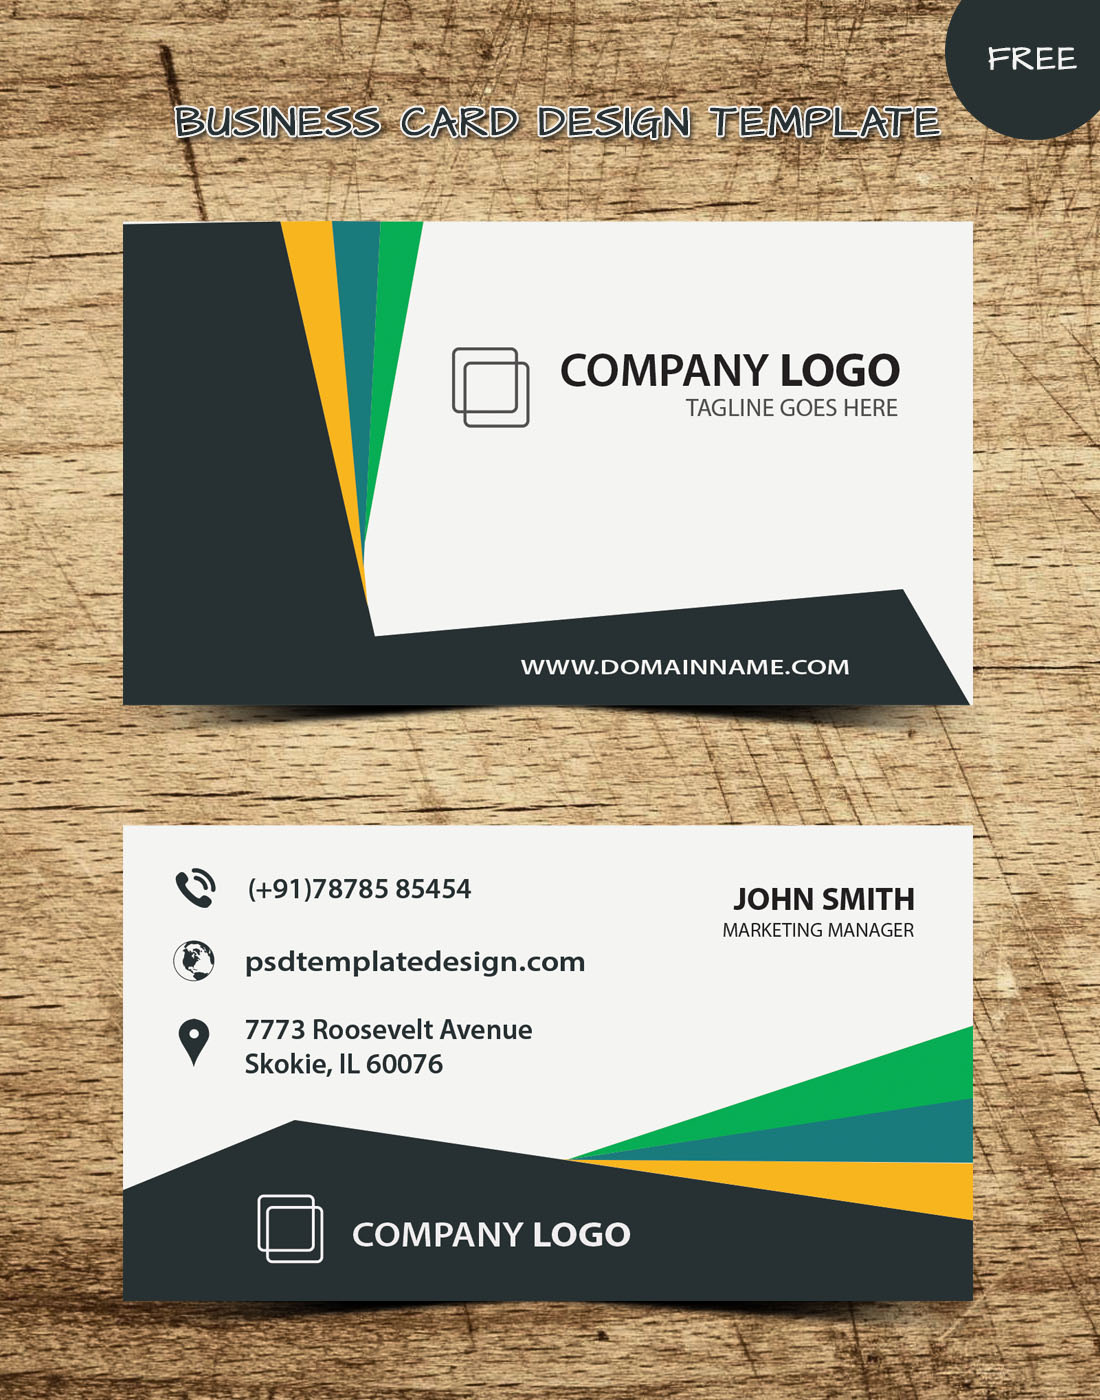 BUSINESS-CARD TEMPLATE